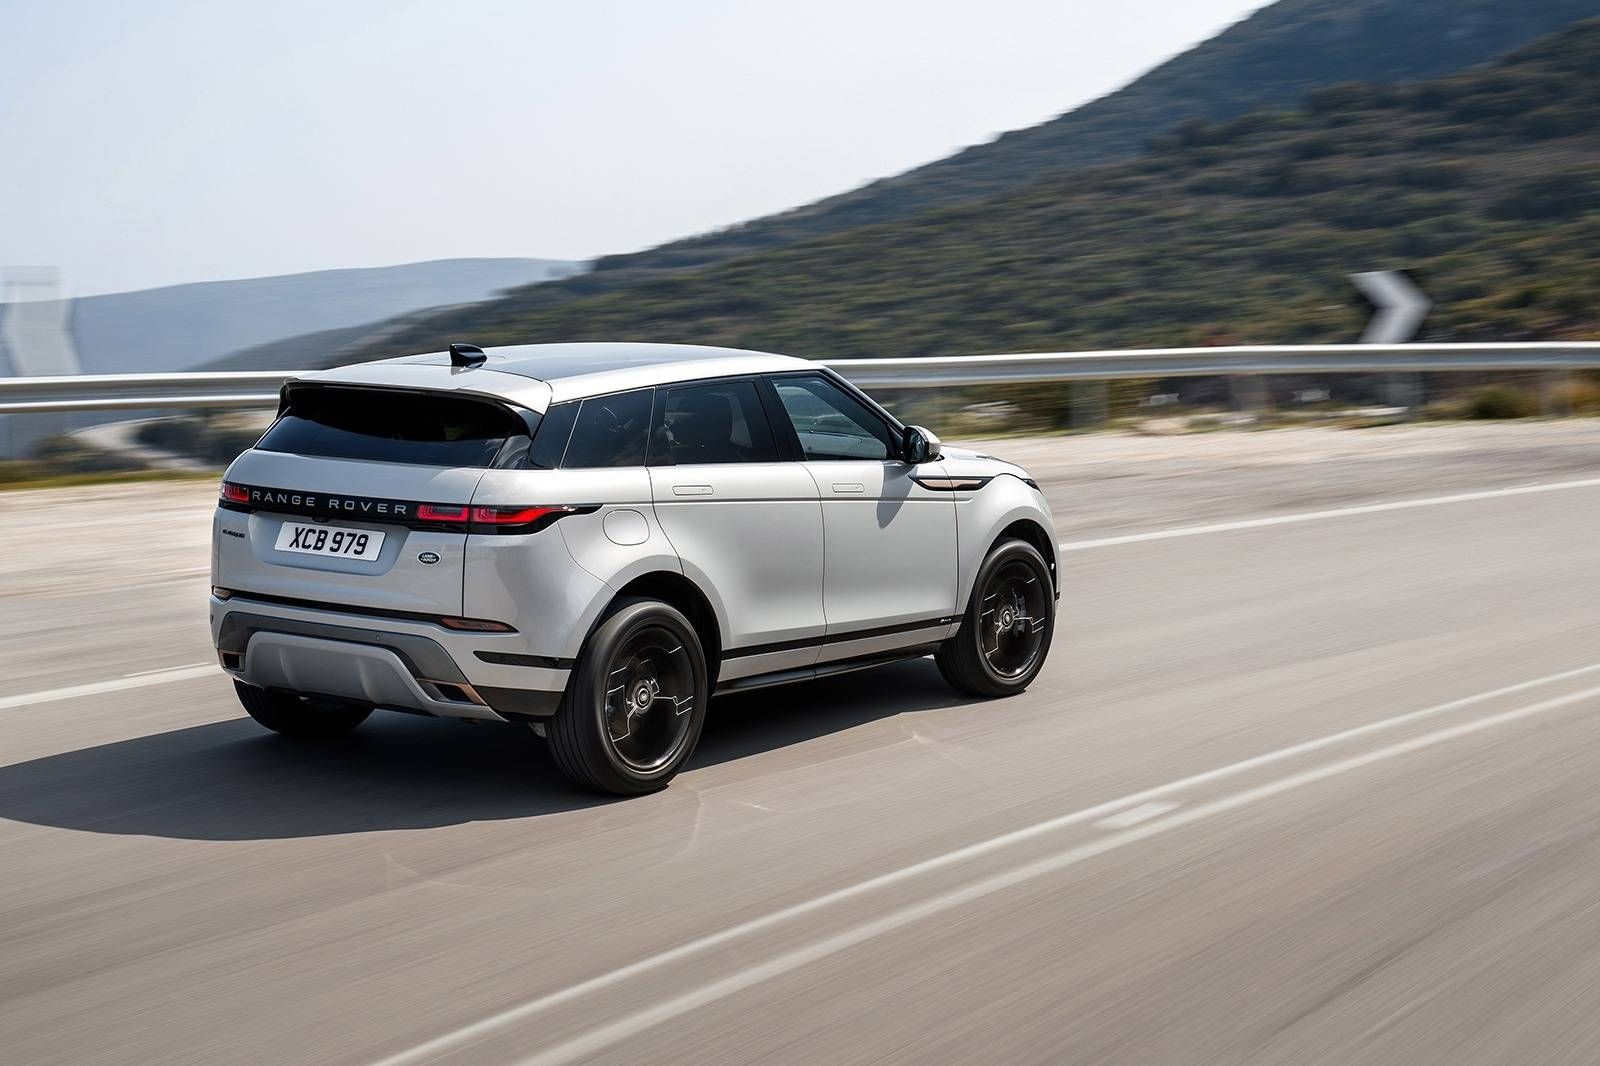 2020 Range Rover Evoque Redesign Detail & Price Info